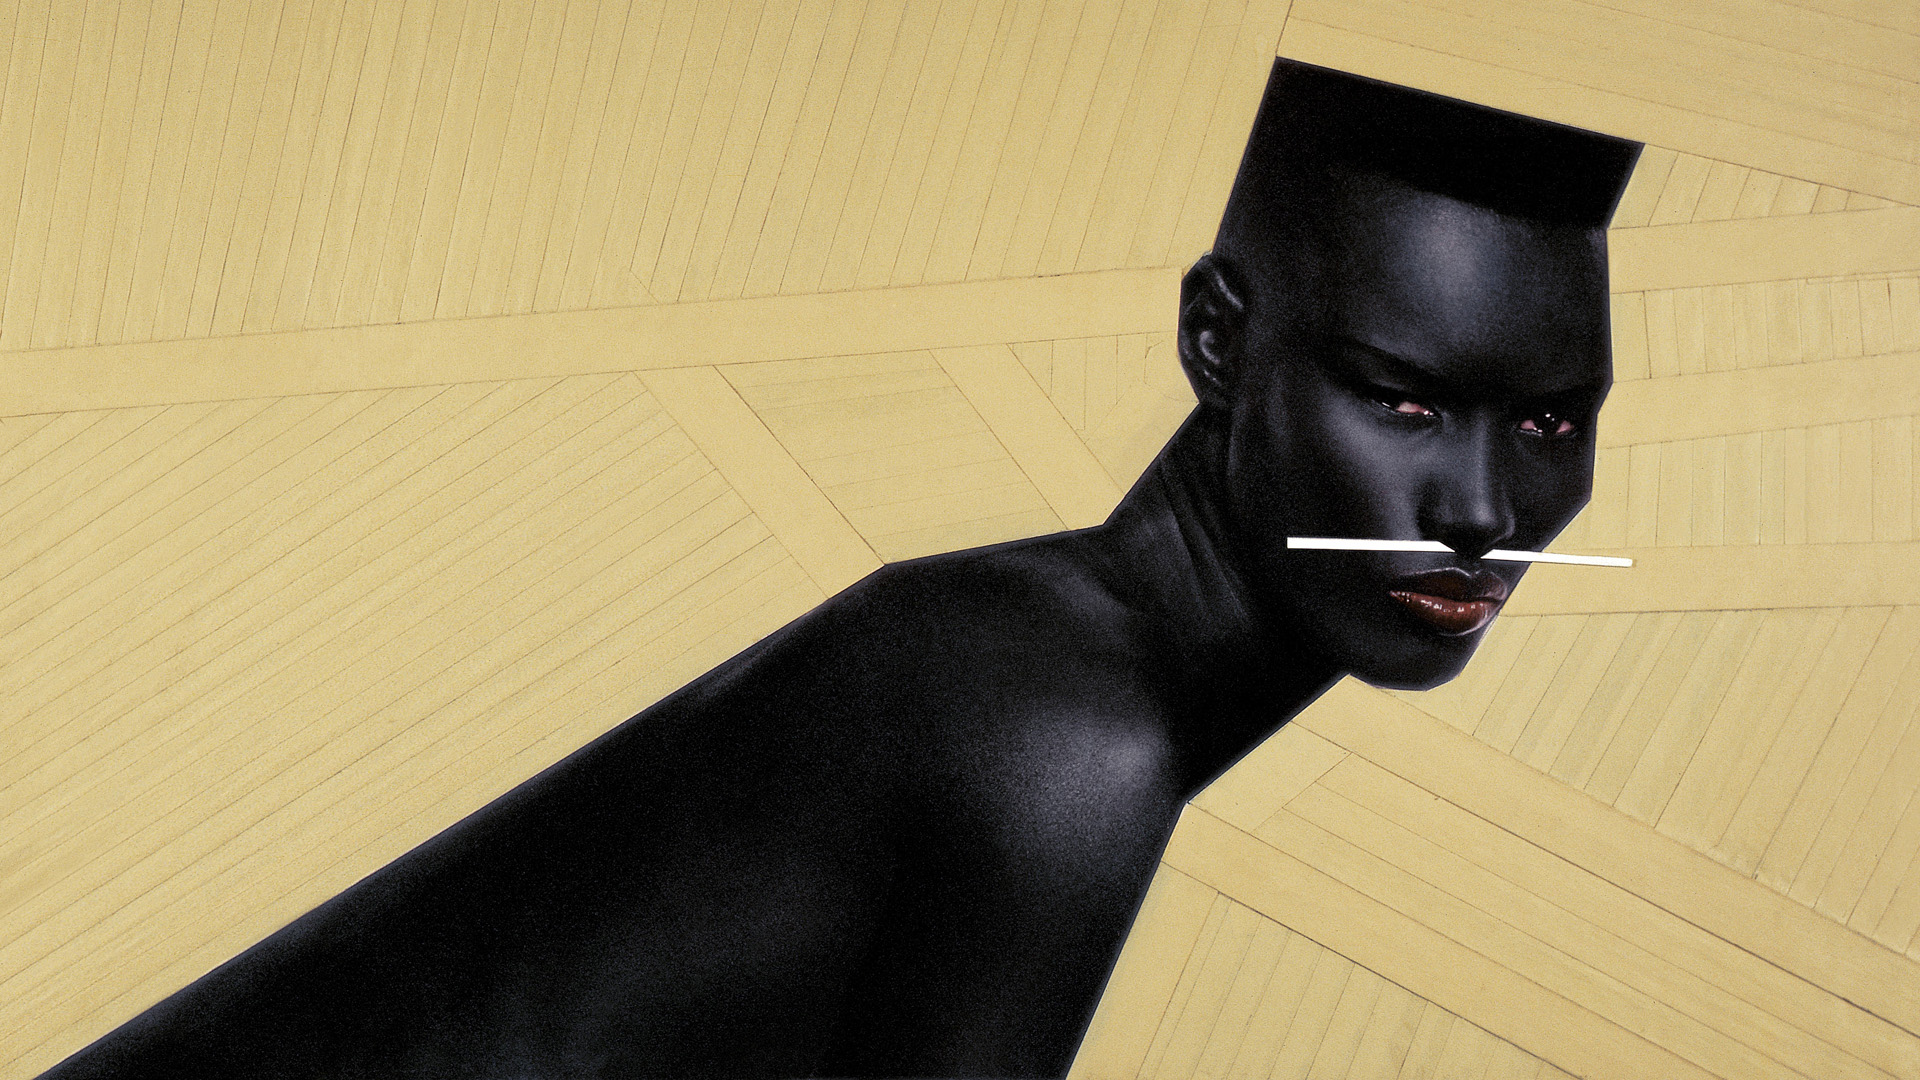 Pull Up To The Bumper av Grace Jones